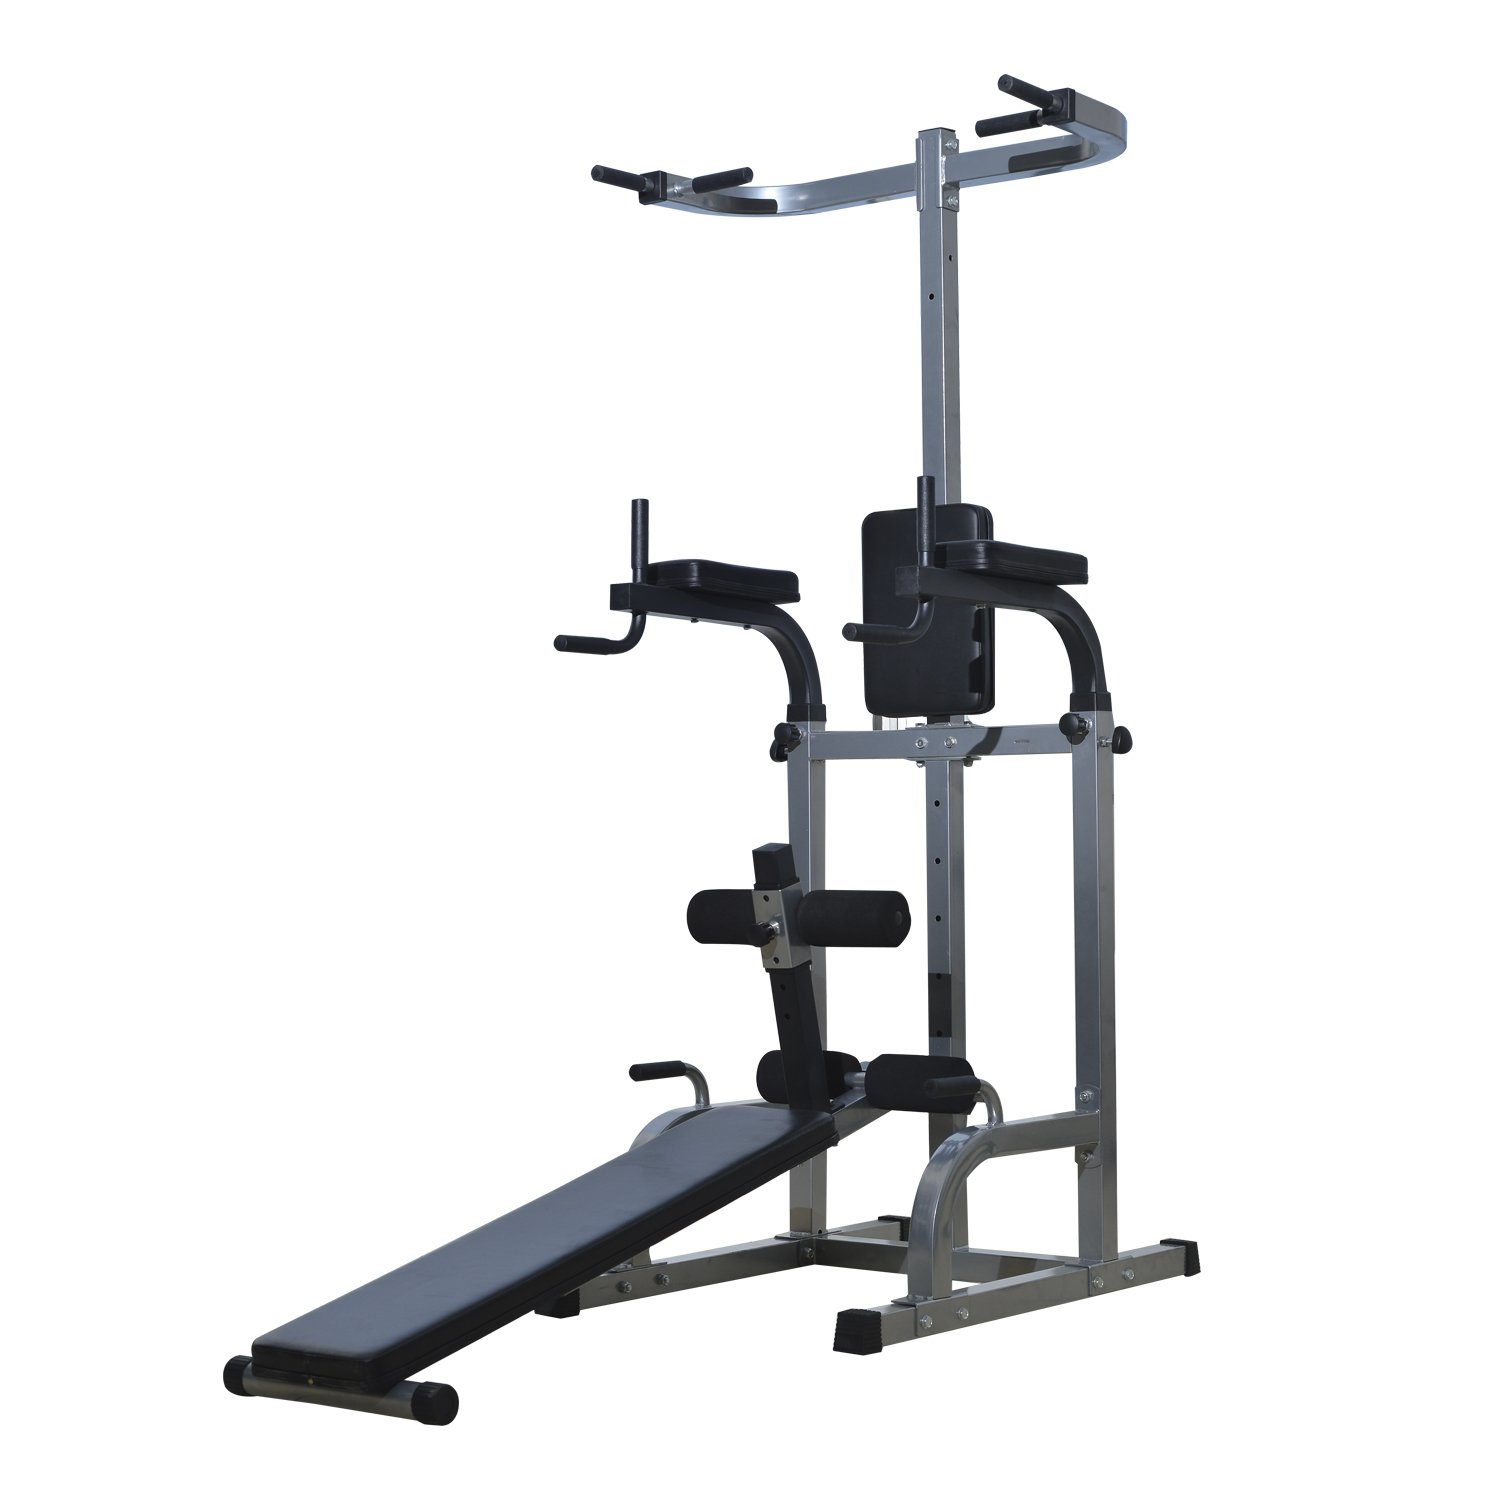 Ordinary Weight Bench With Pull Up Bar Part - 11: Soozier Power Tower With Dip Station Sit-up Bench Pull-up Bar Combo  Exercise Ab Work Gym, Home Gyms - Amazon Canada